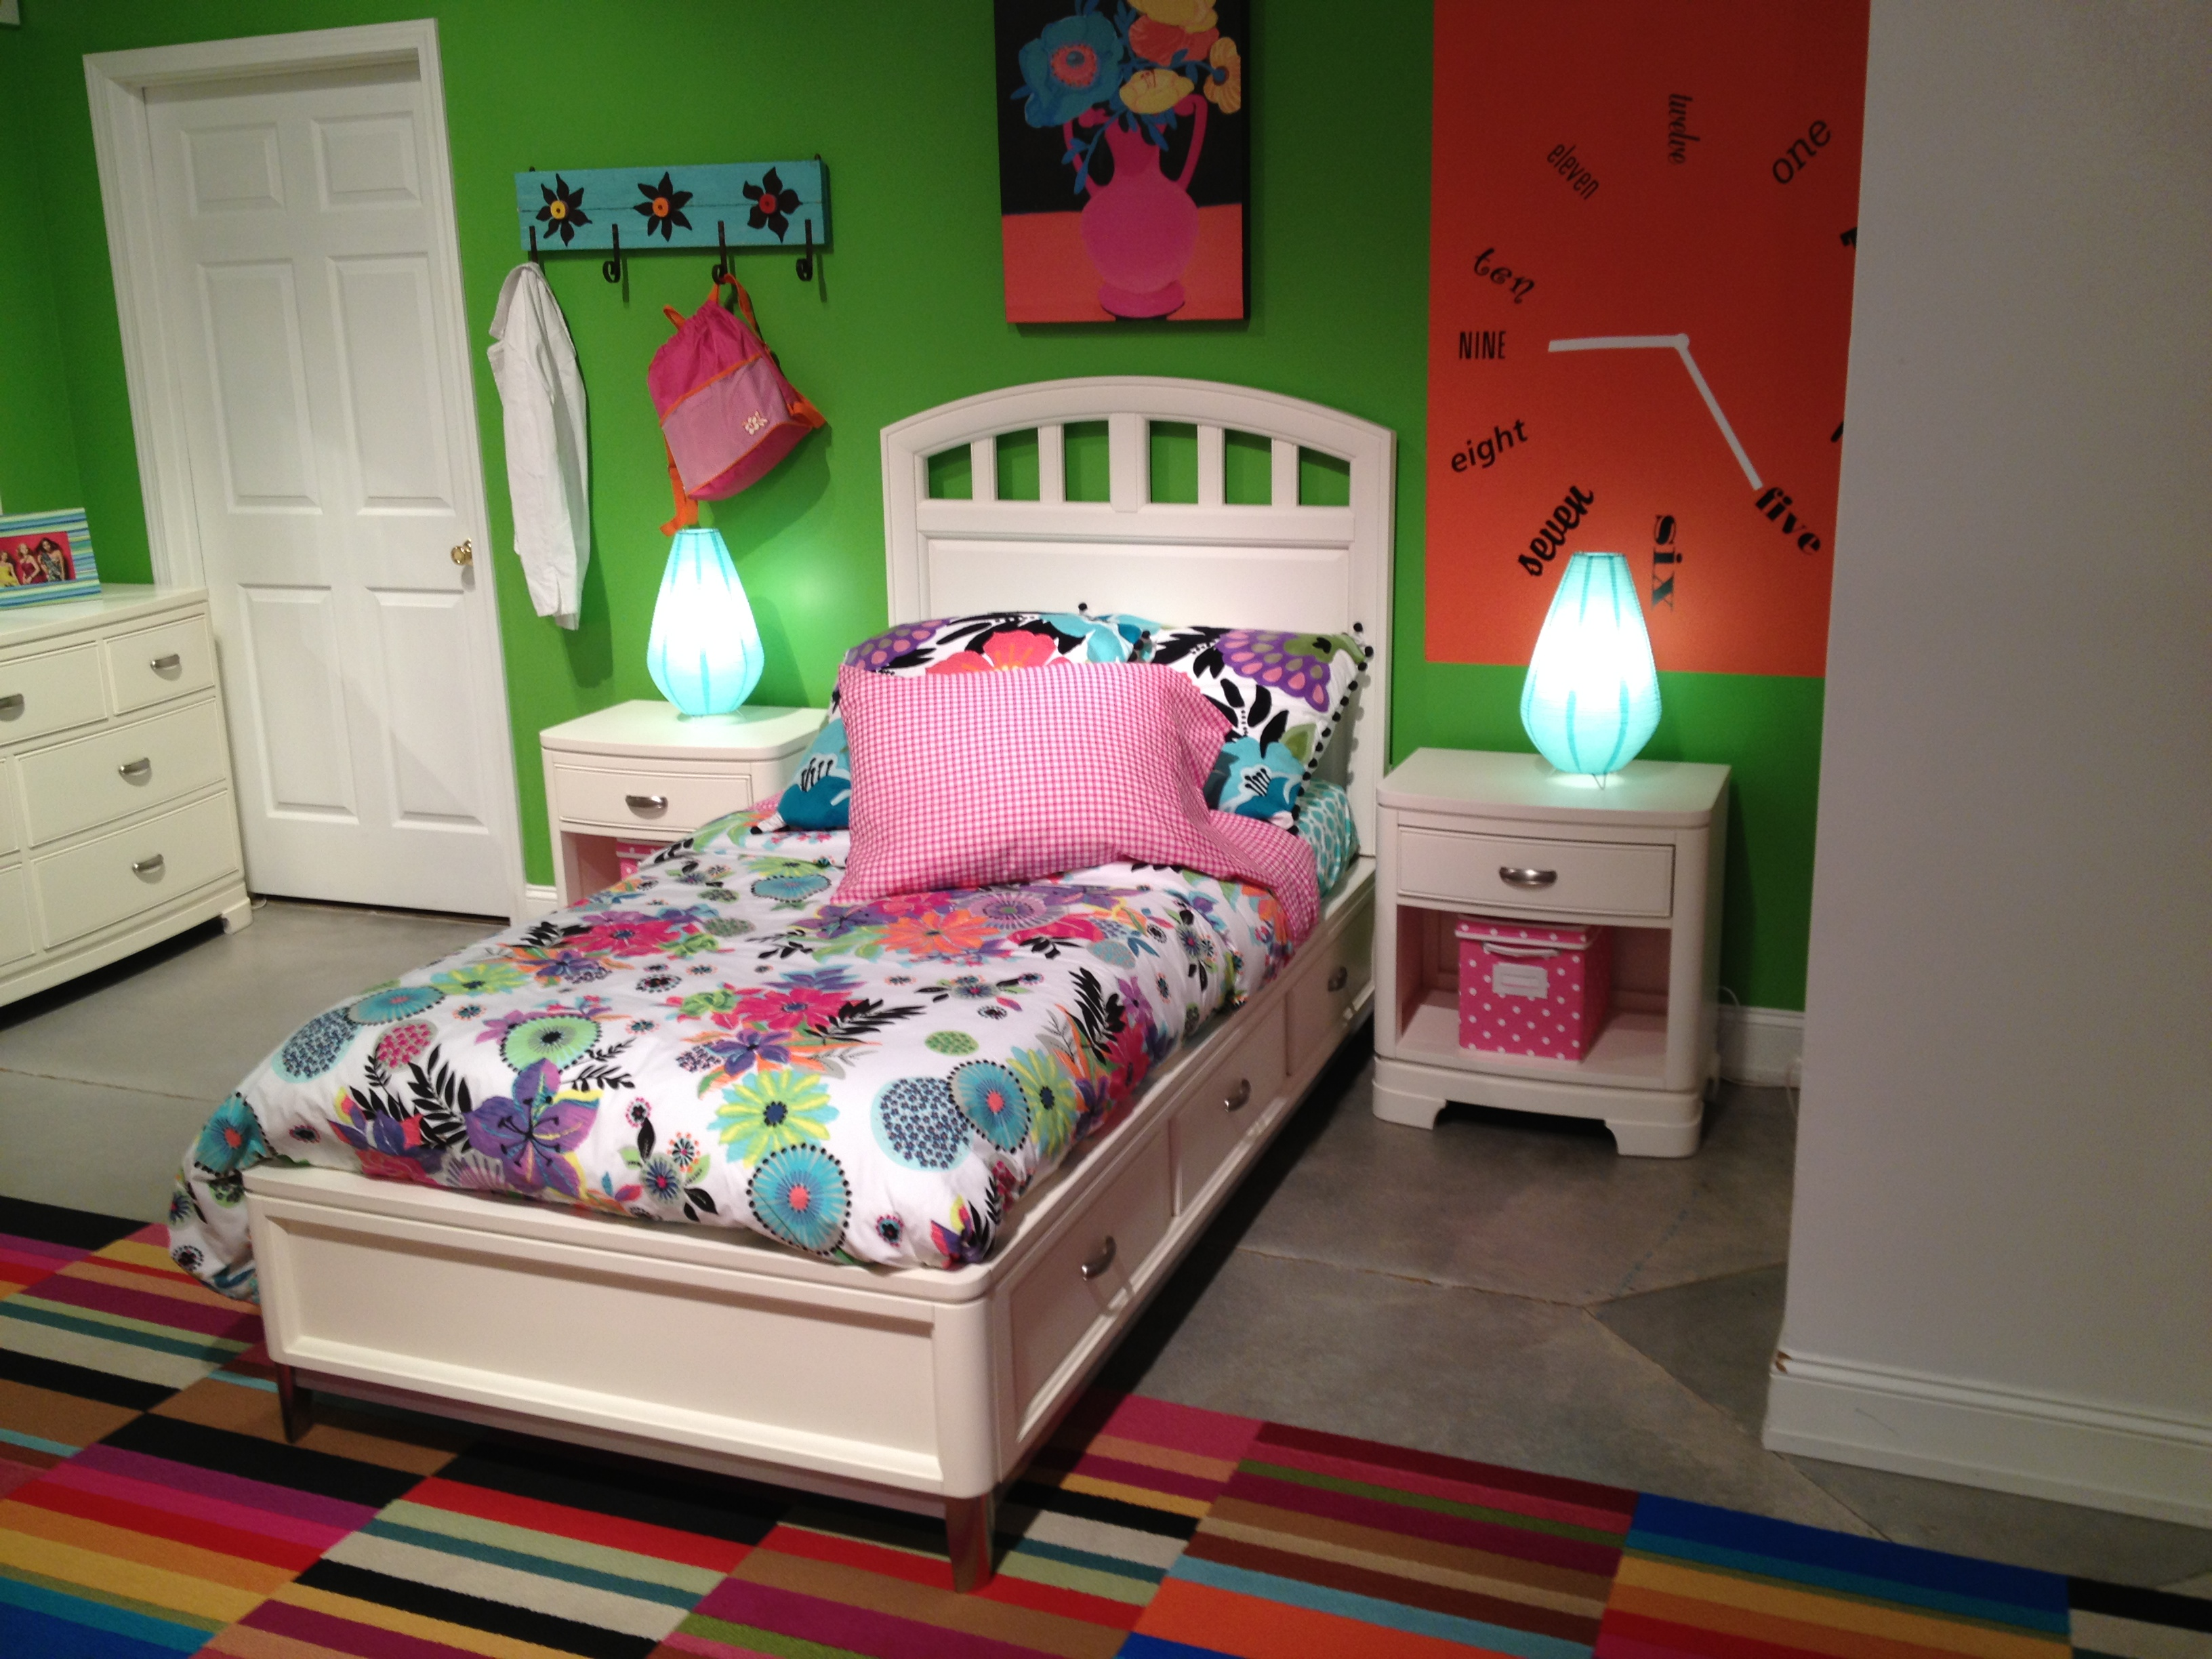 Time for Bed at Totally Kids fun furniture and toys. decorating kids bedrooms